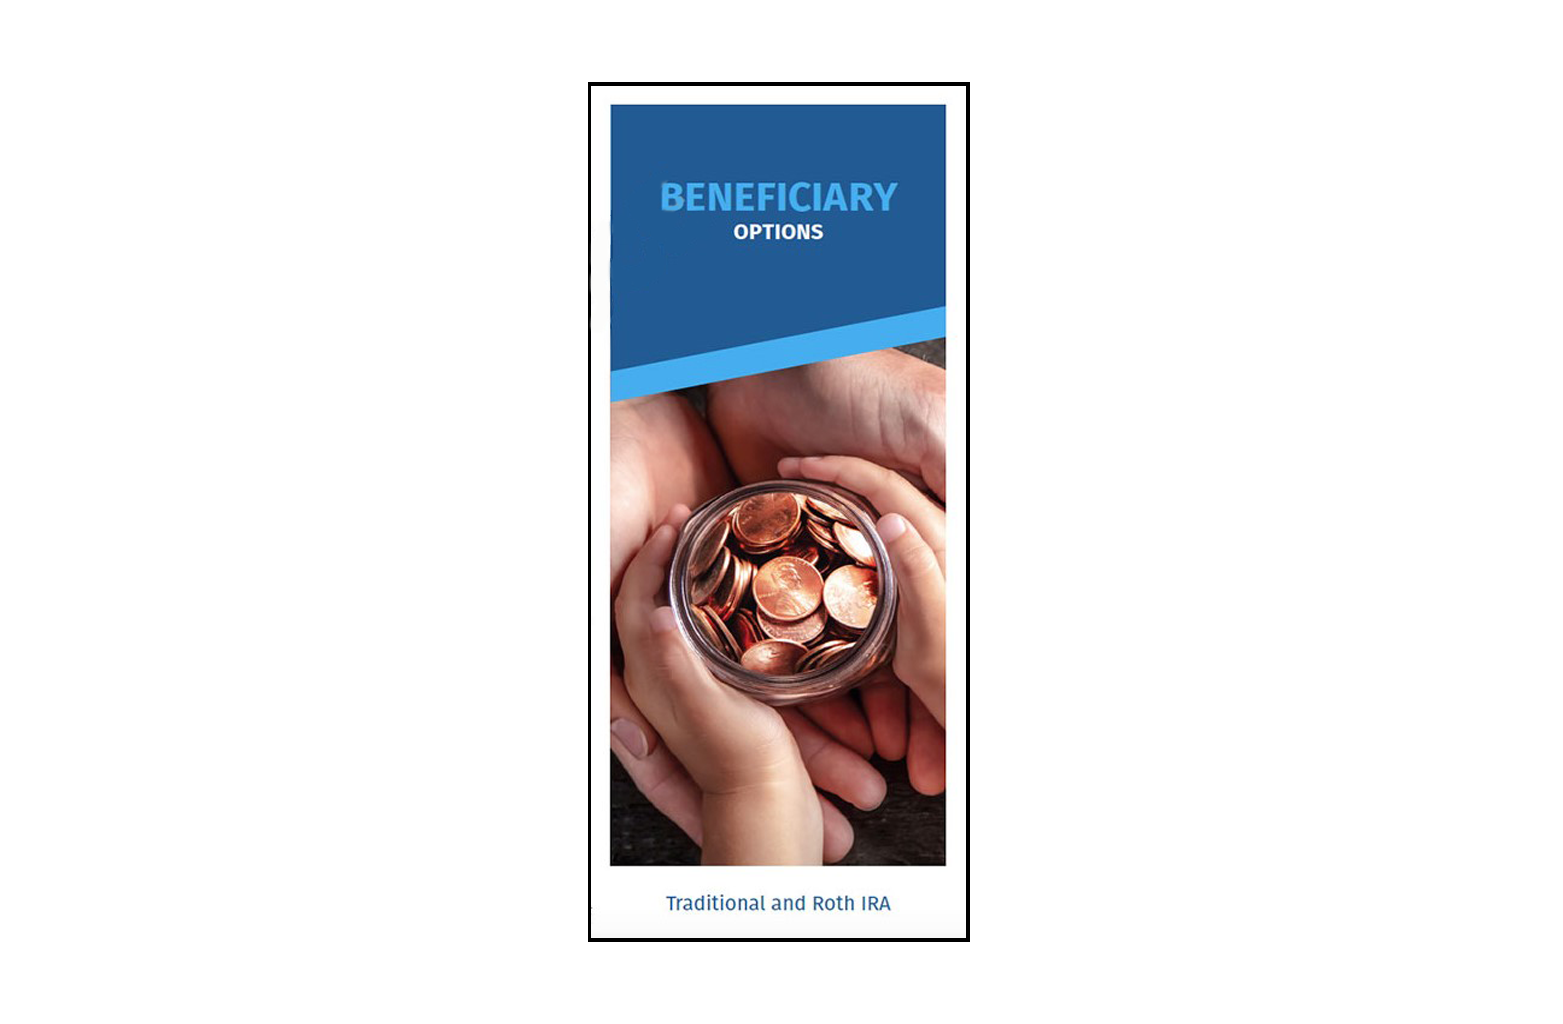 Beneficiary Options Brochure Sample